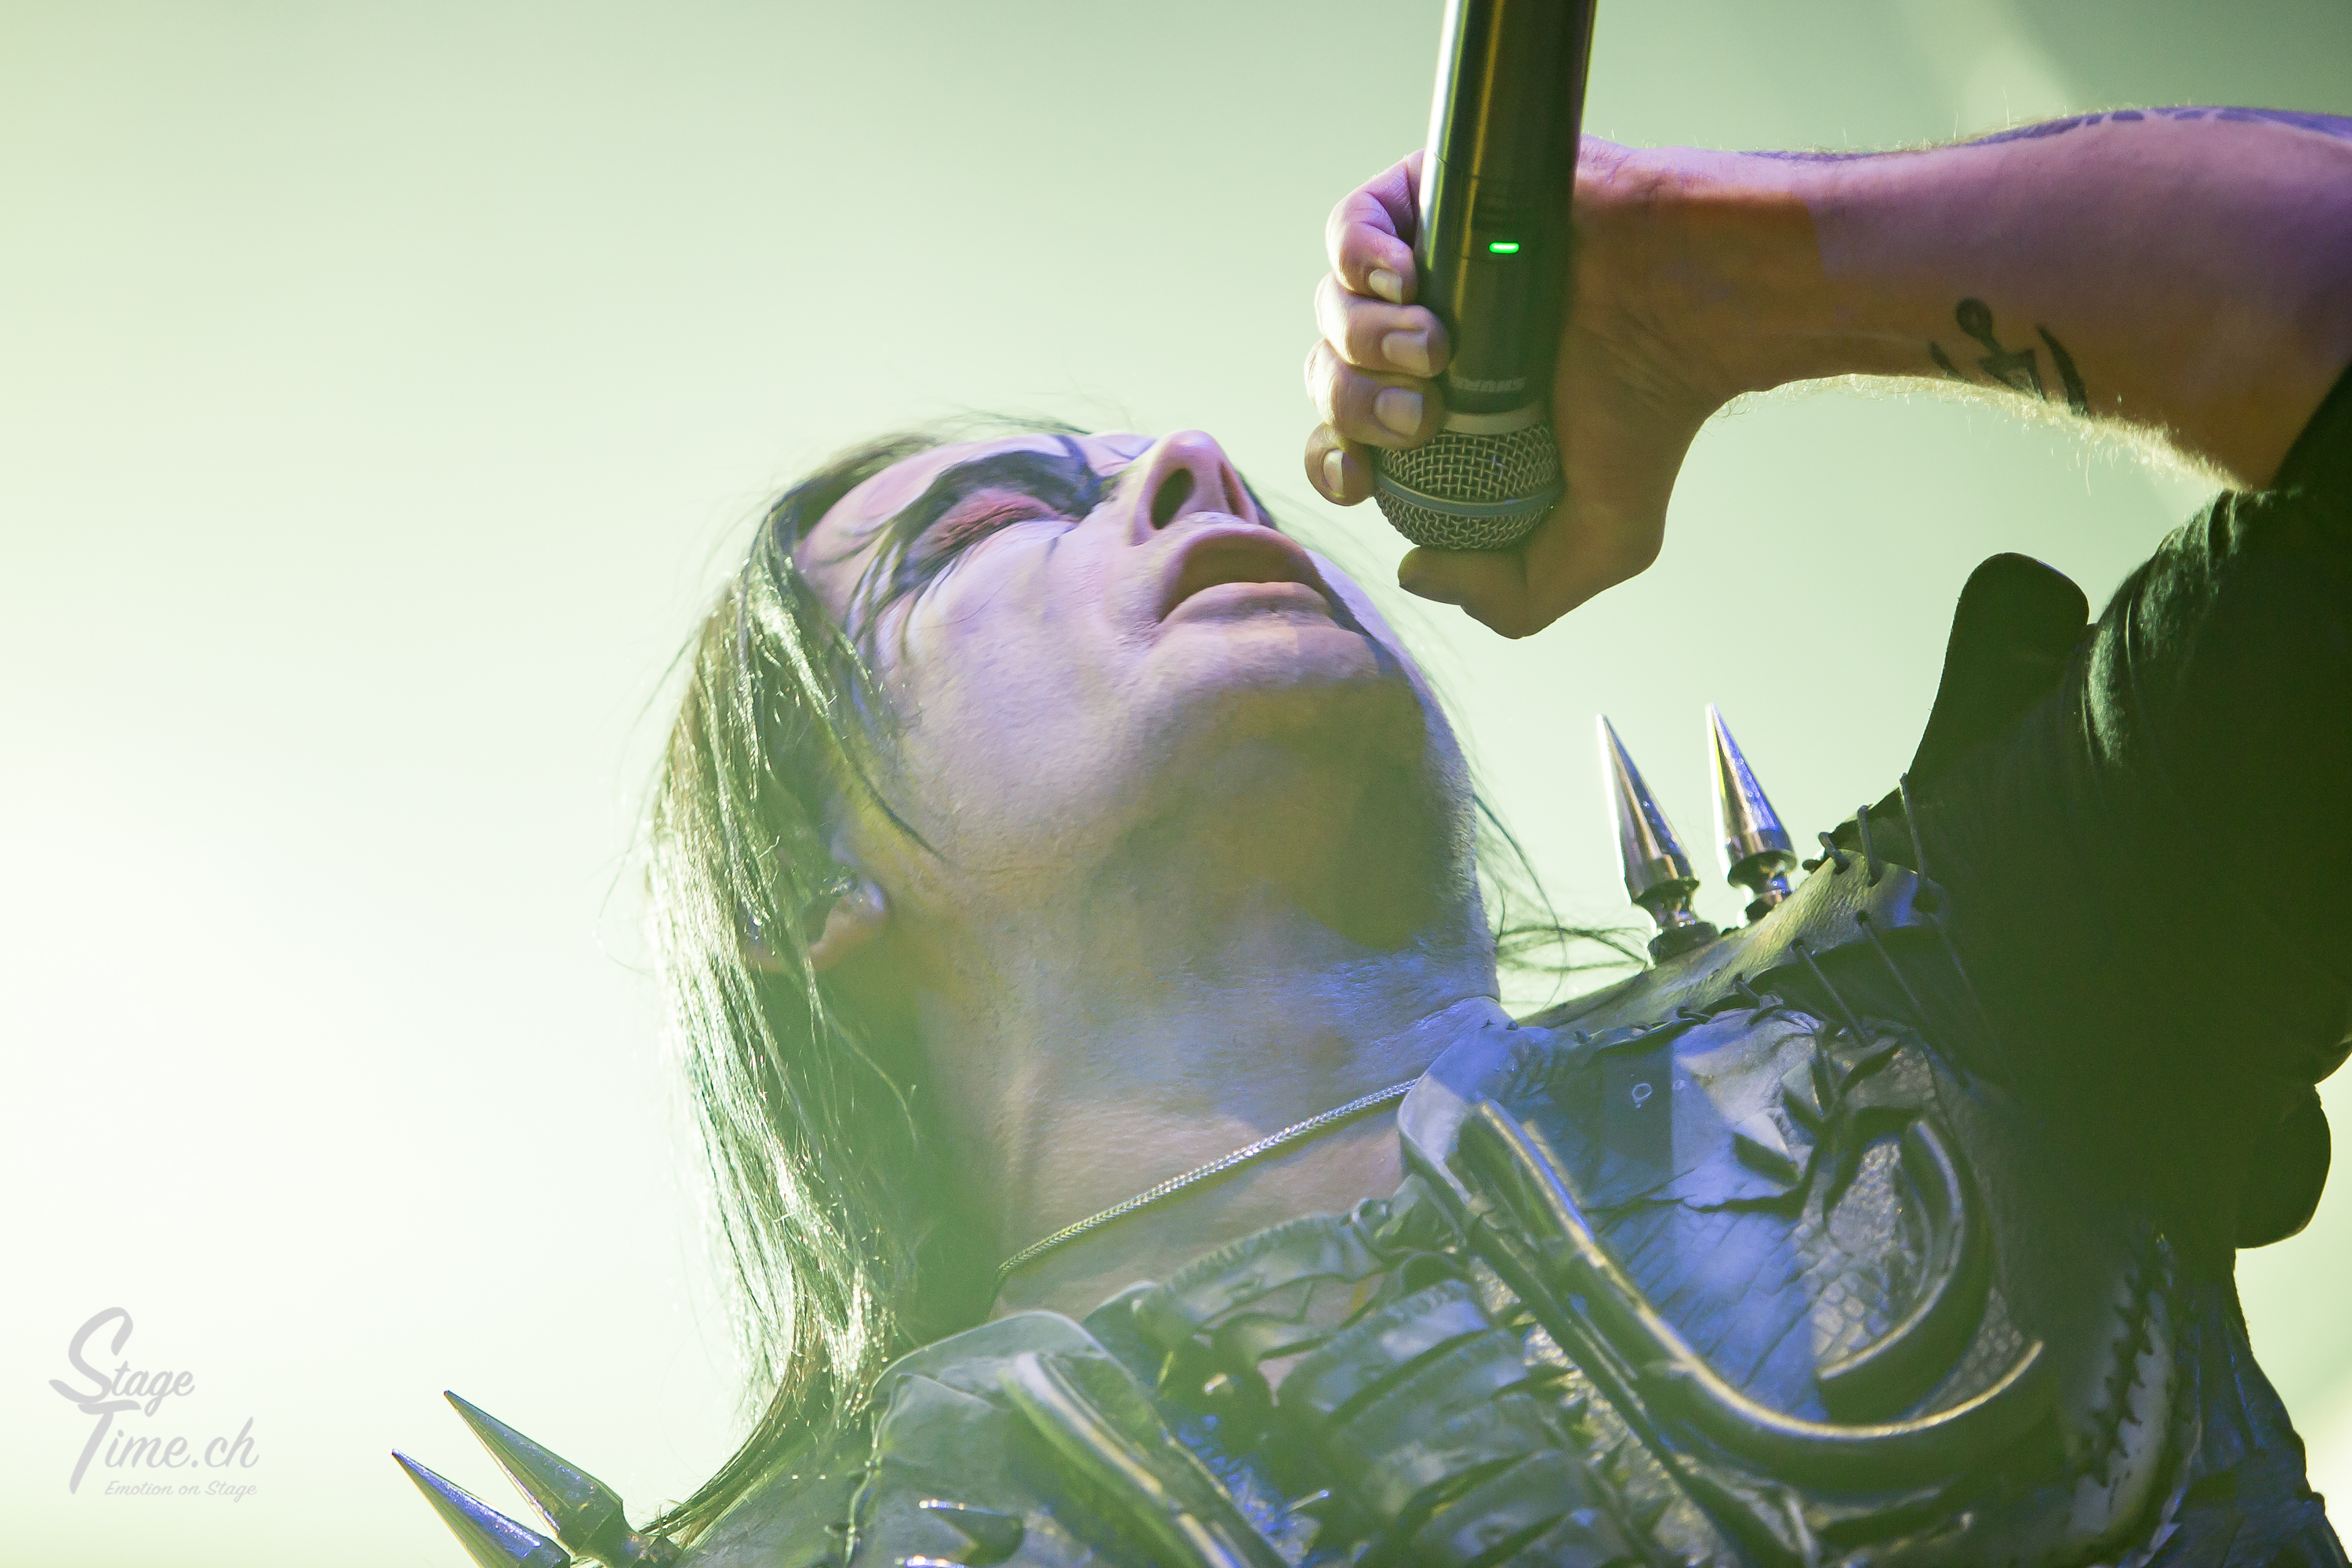 Cradle_of_Filth_(Foto-Christoph_Gurtner-_Stagetime.ch)-9